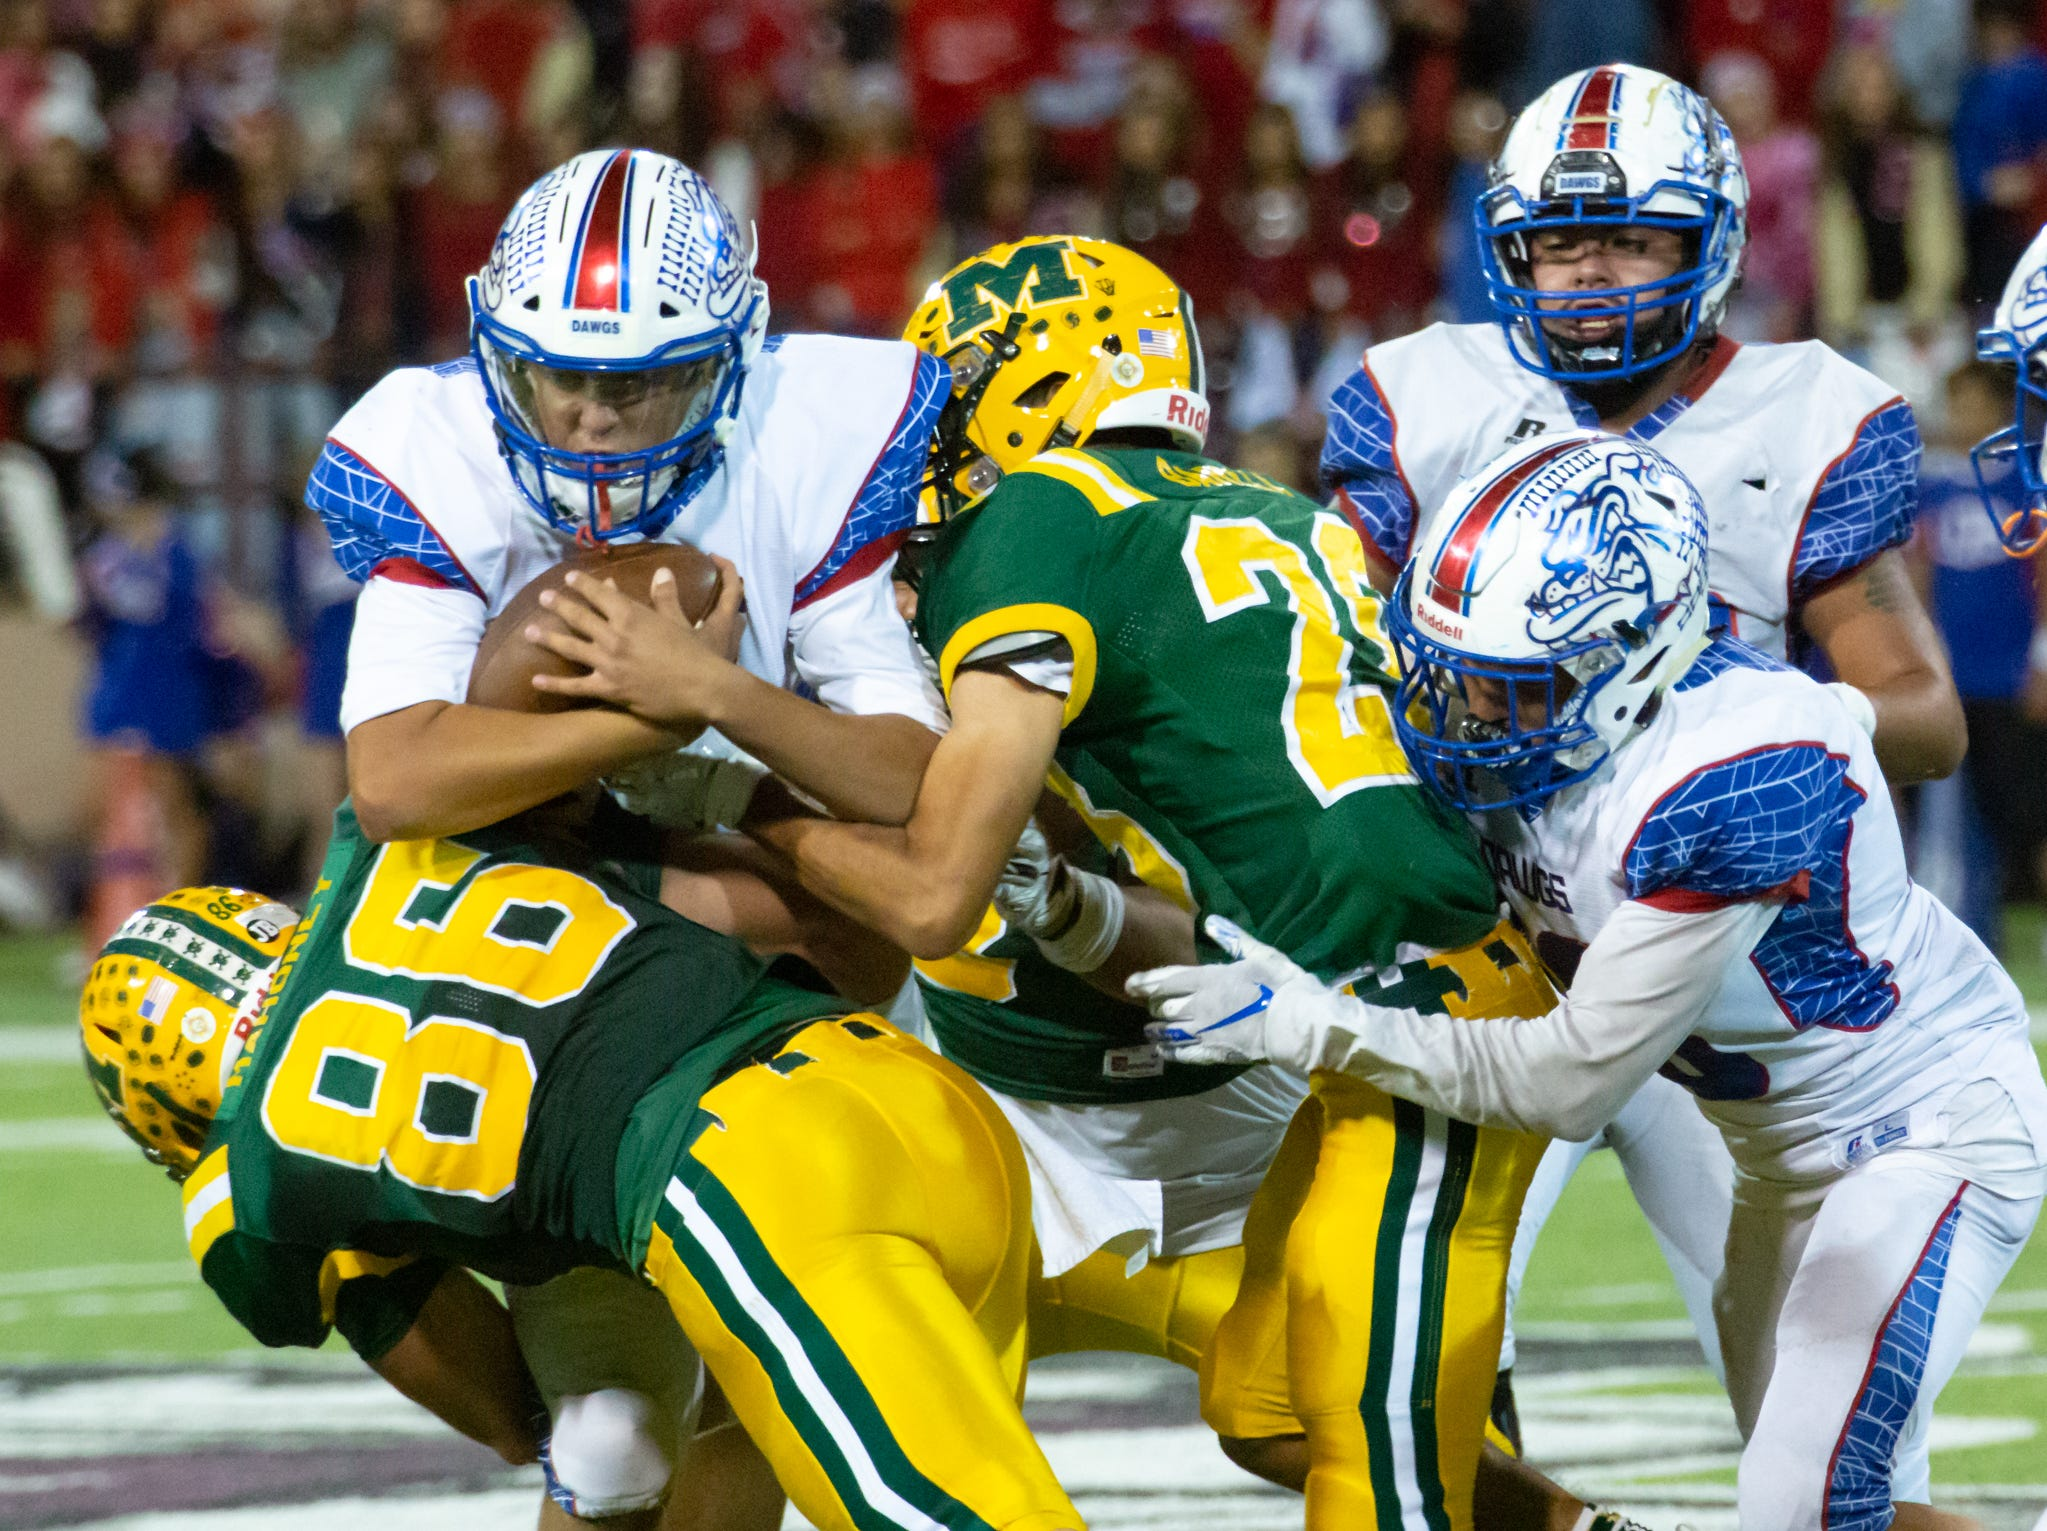 Players firght for a win during the Cruces/Mayfield football game on Friday, Nov. 2, 2018, at Aggie Memorial Stadium.